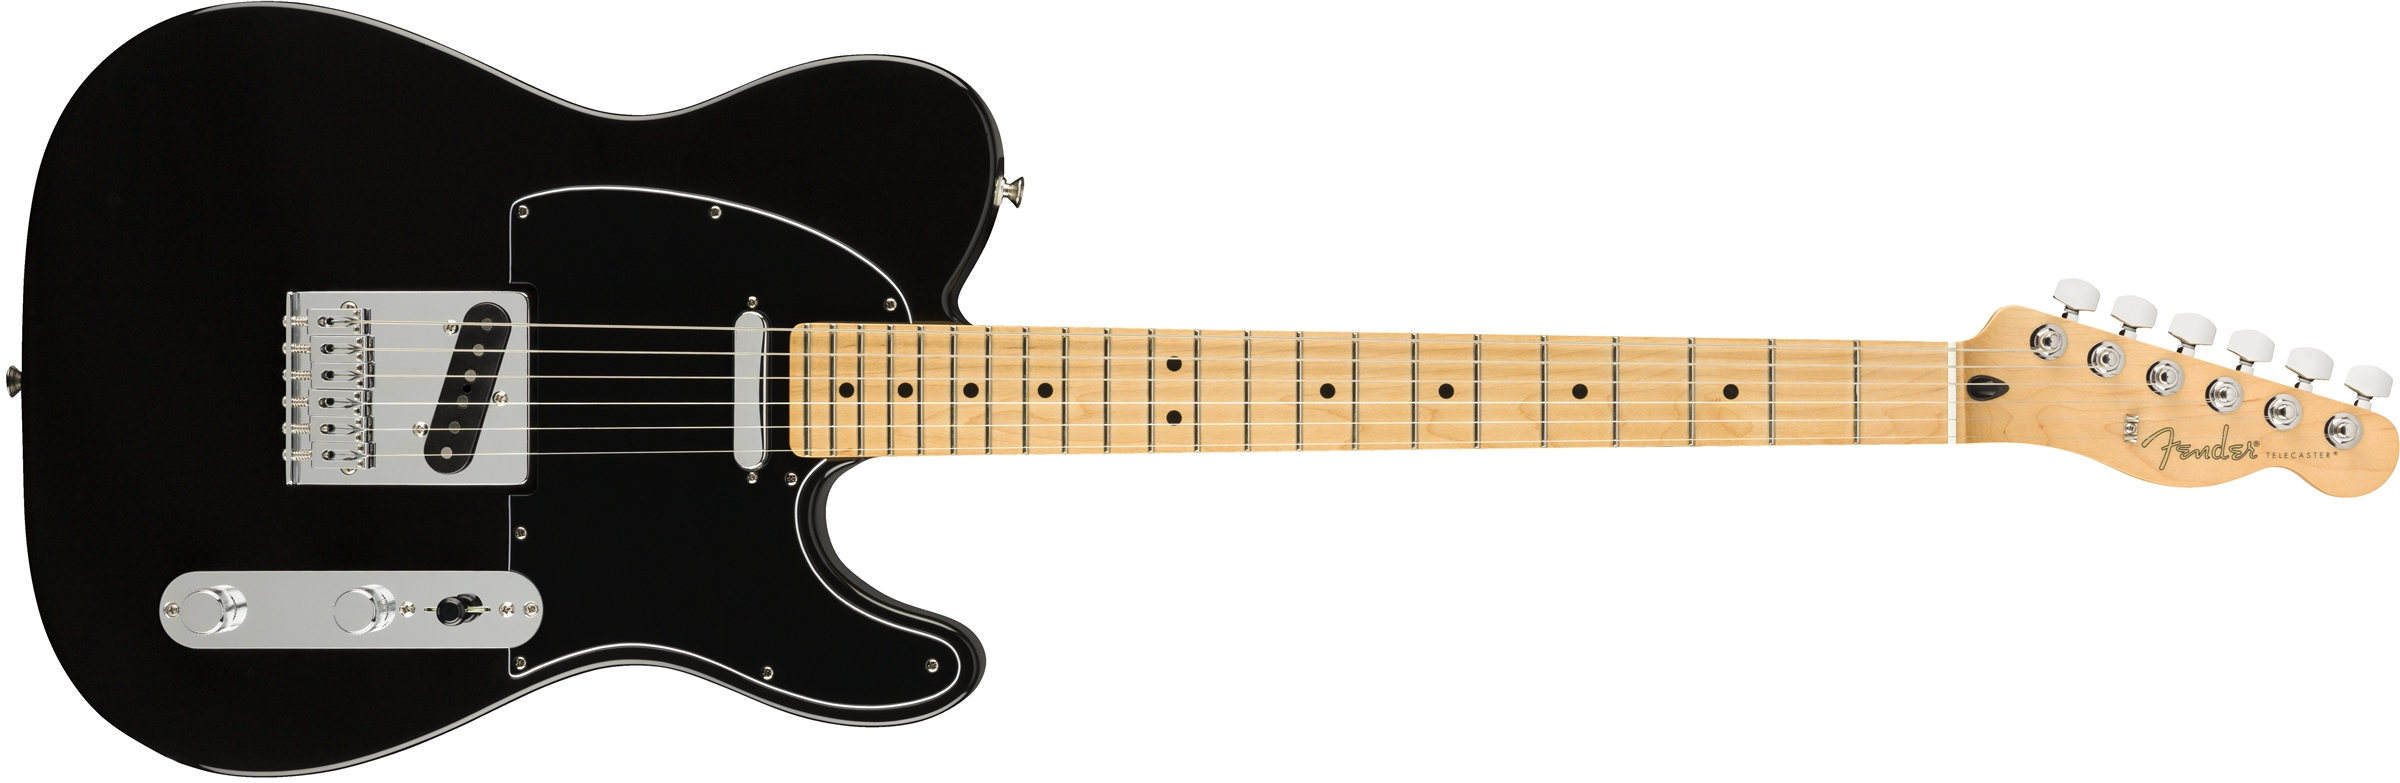 FENDER-Player-Telecaster-MN-Black-0145212506-sku-22437